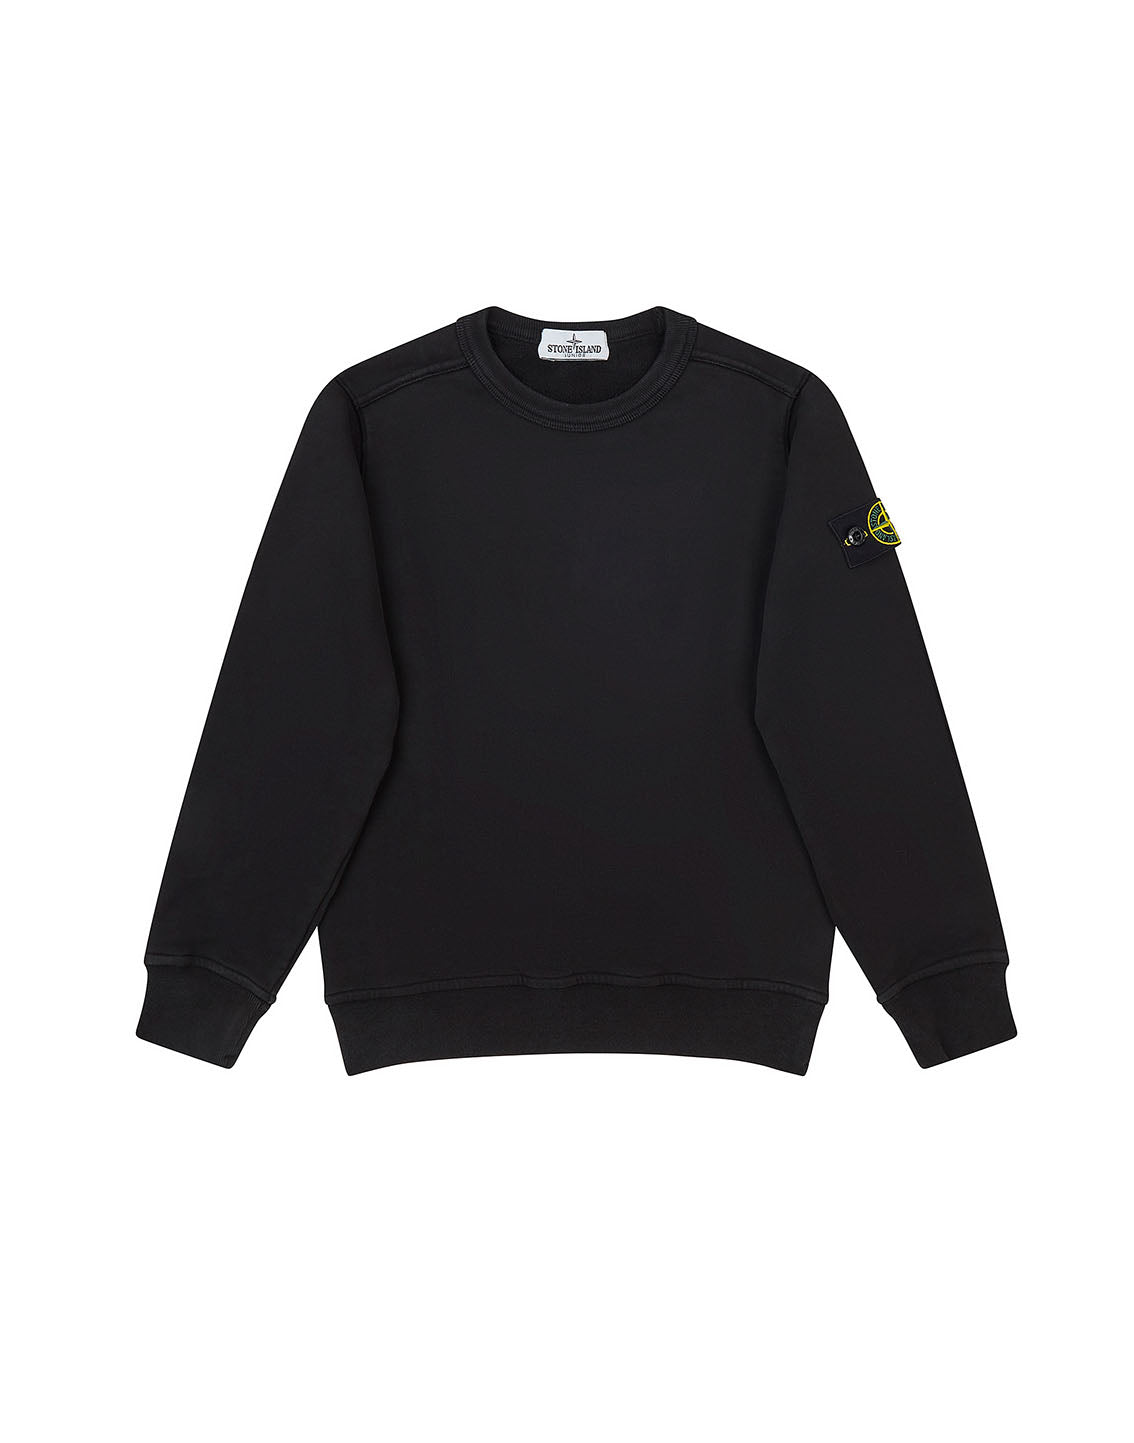 60940 Crewneck Sweatshirt in Black